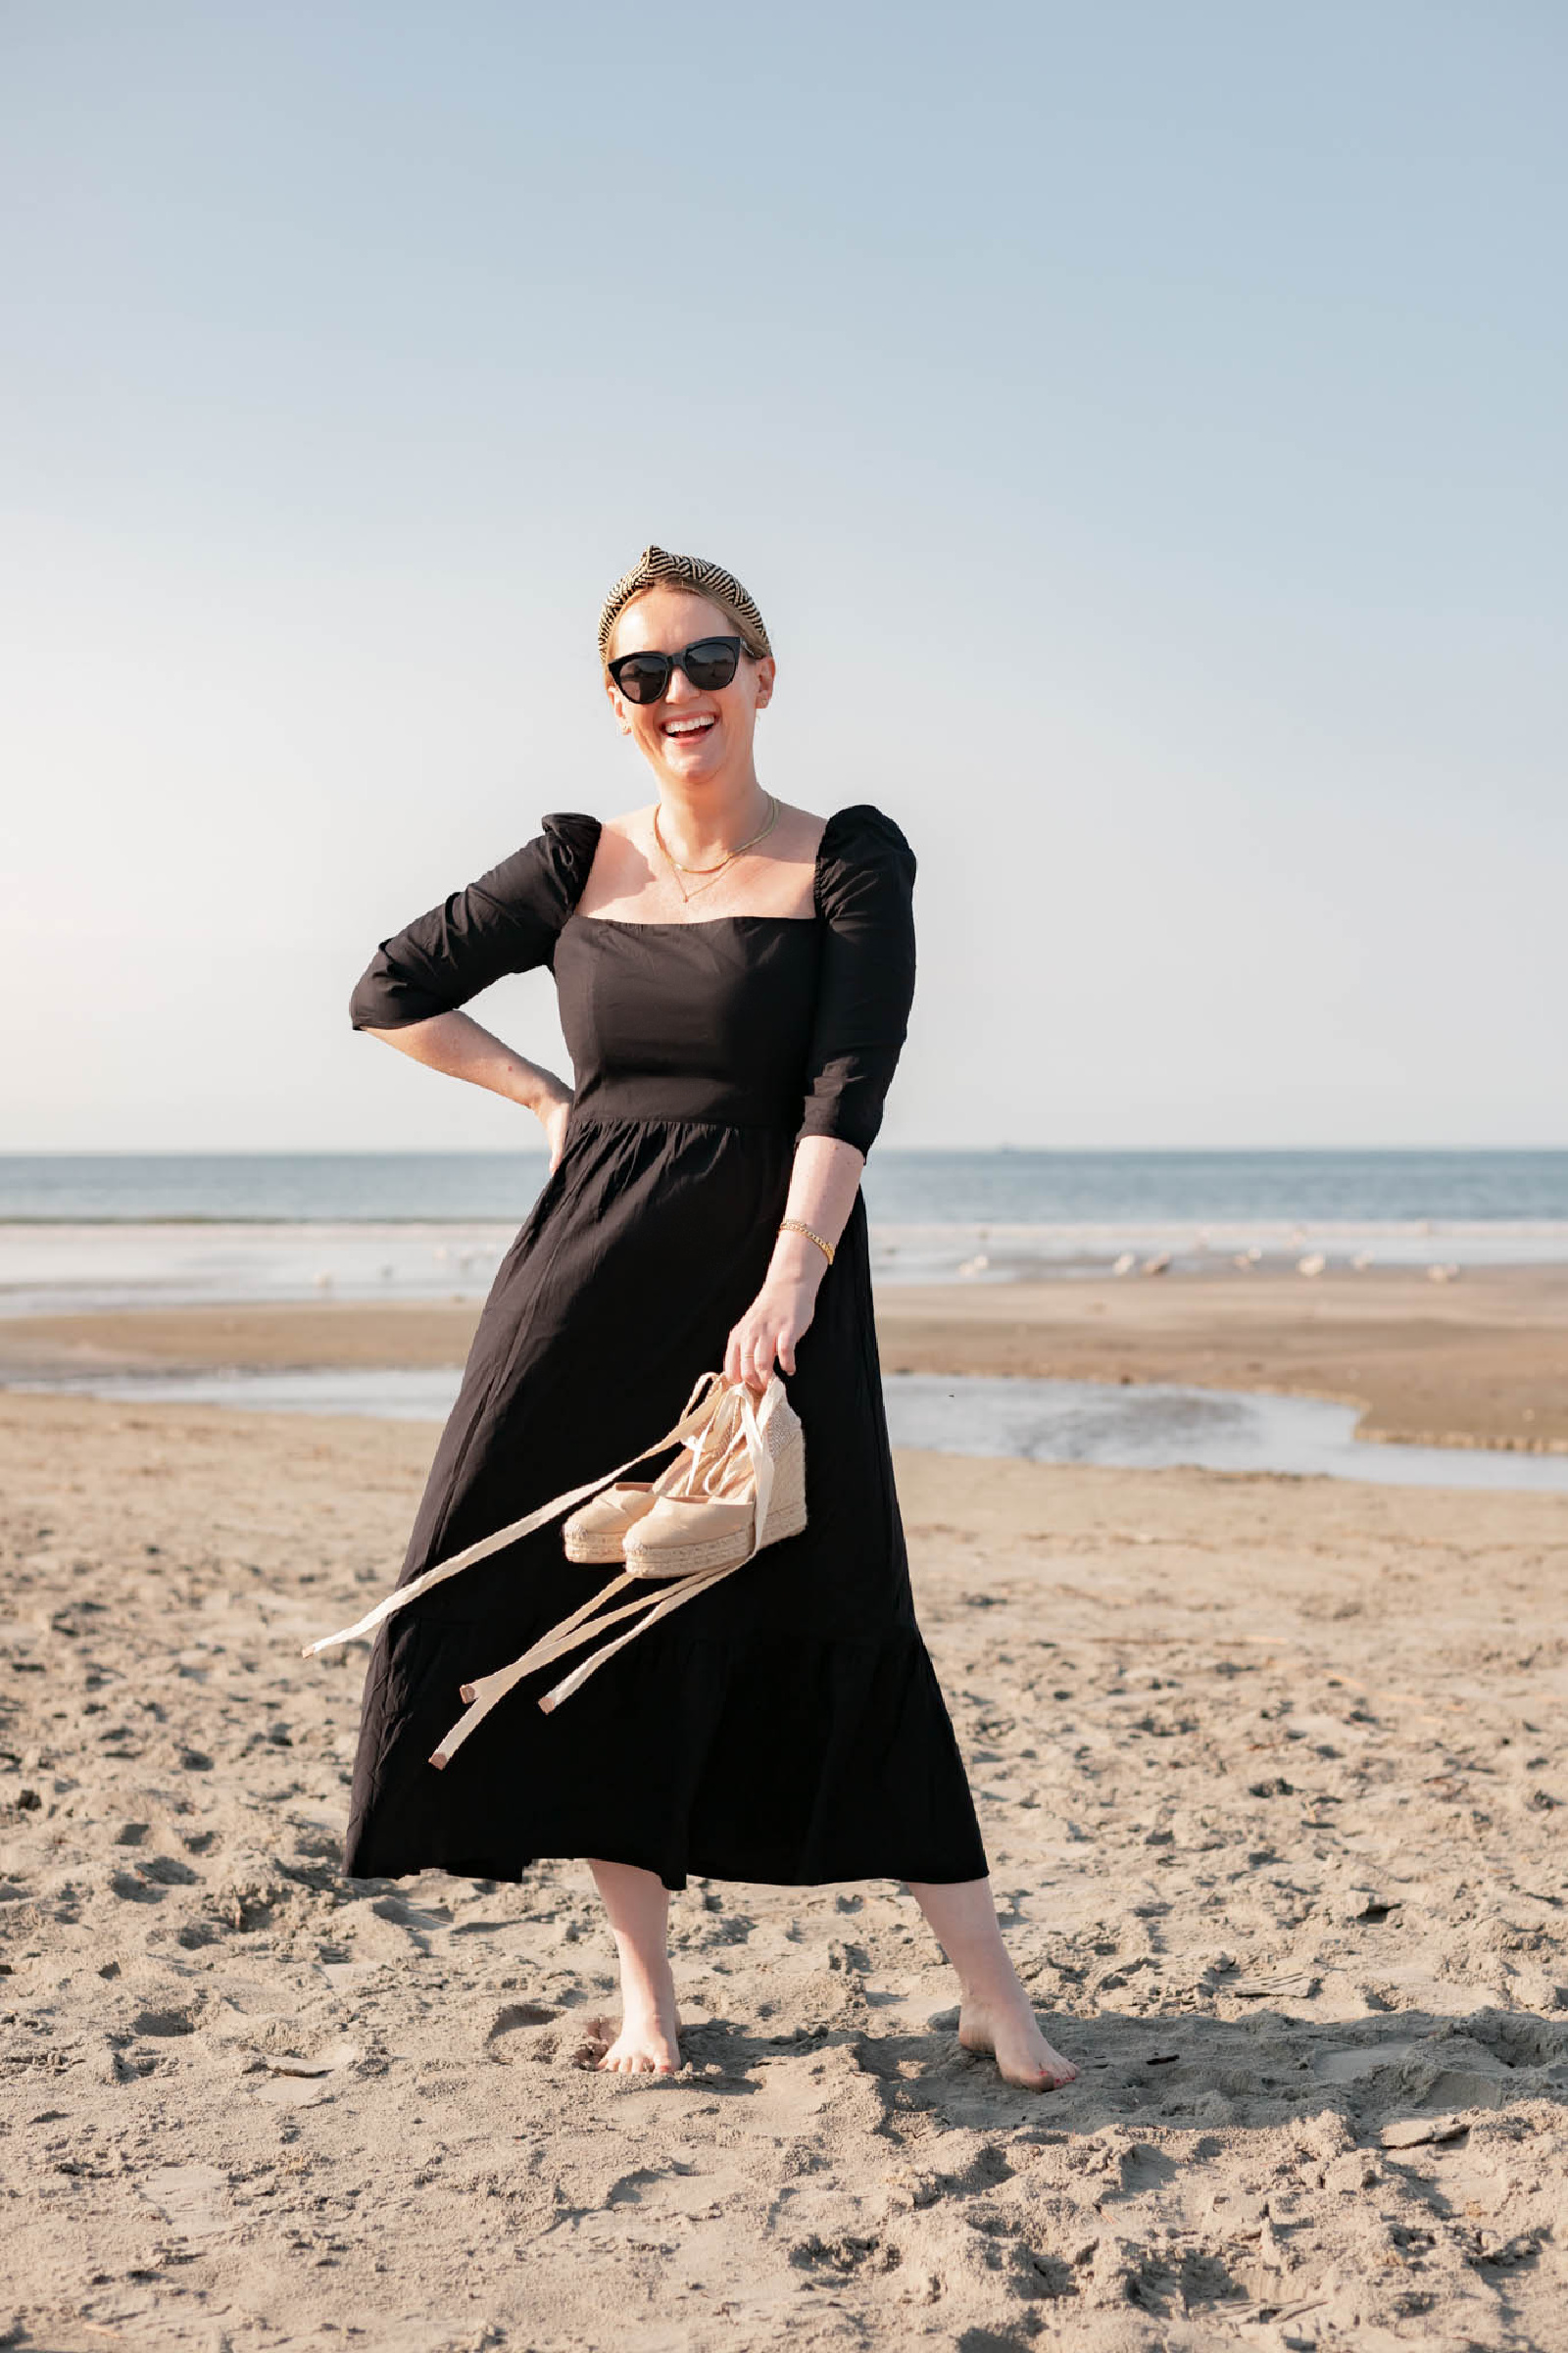 Reformation Cyprus Dress on the Beach